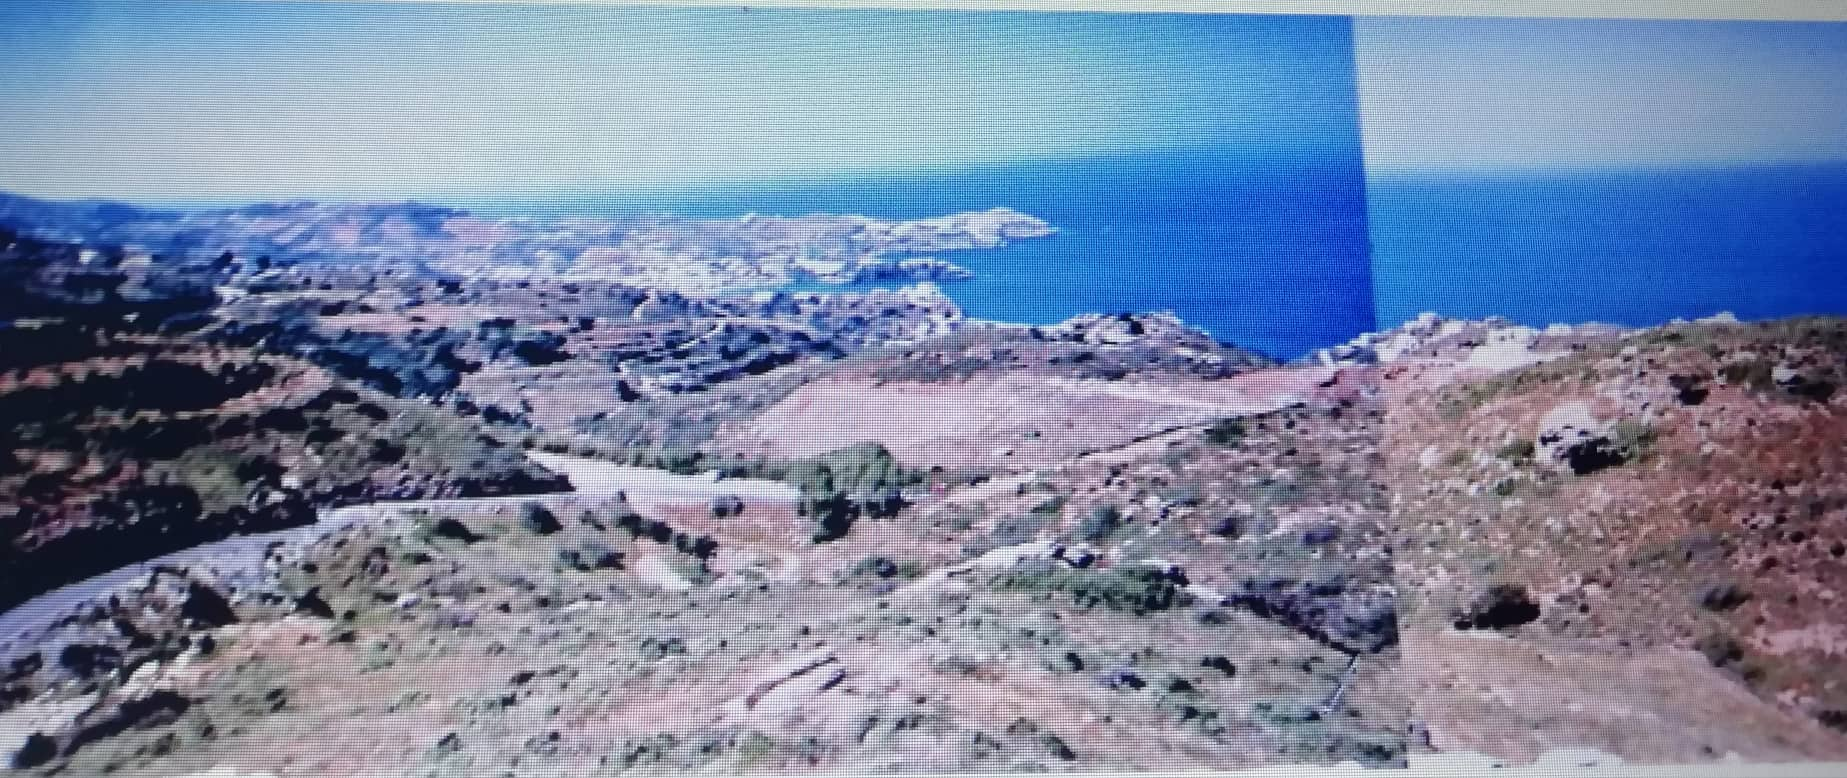 LAND AREA AT ACHLADA OF HERAKLION